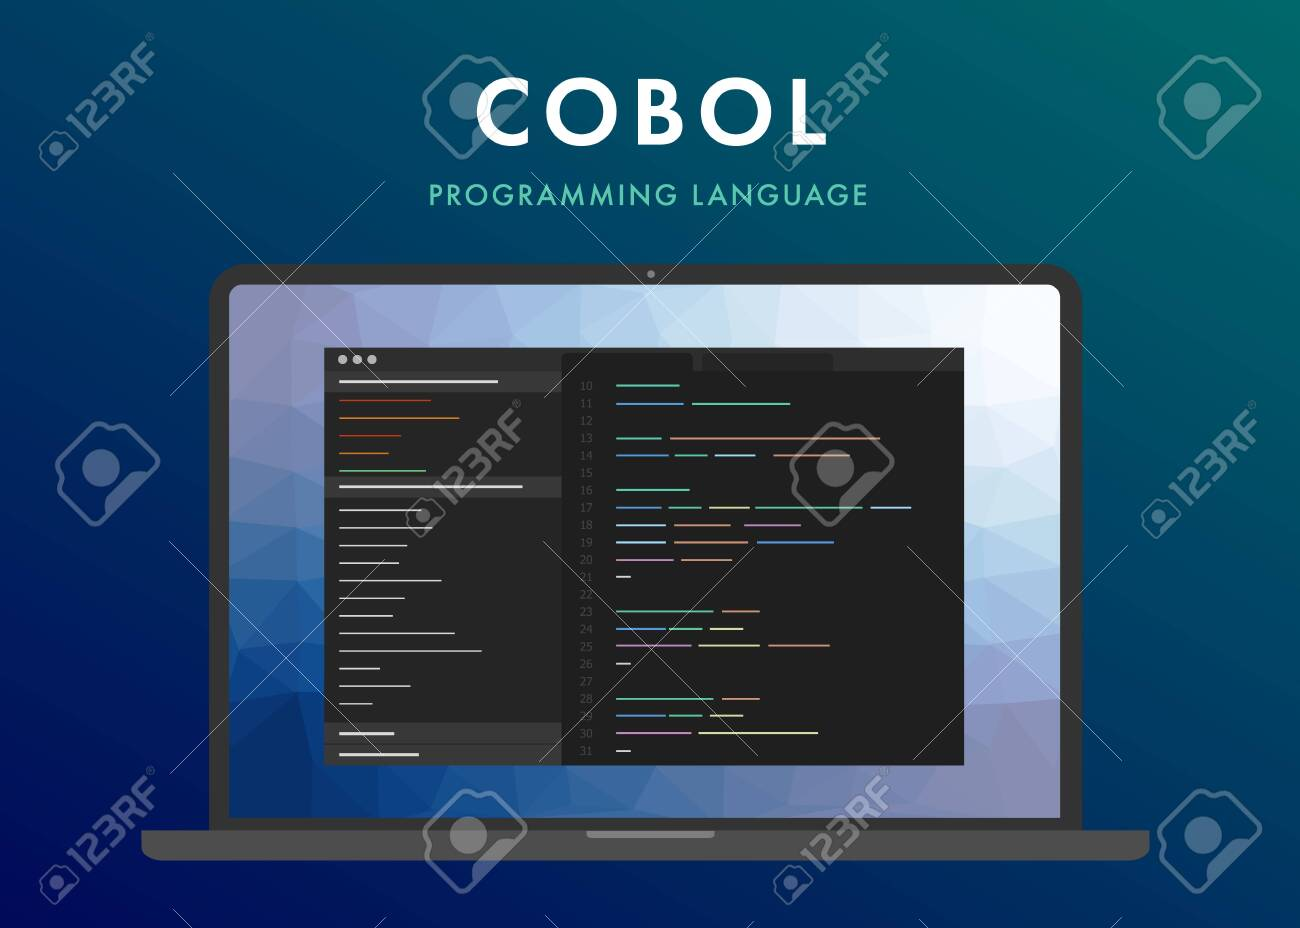 Cobol Programming Language  Learning Concept On The Laptop